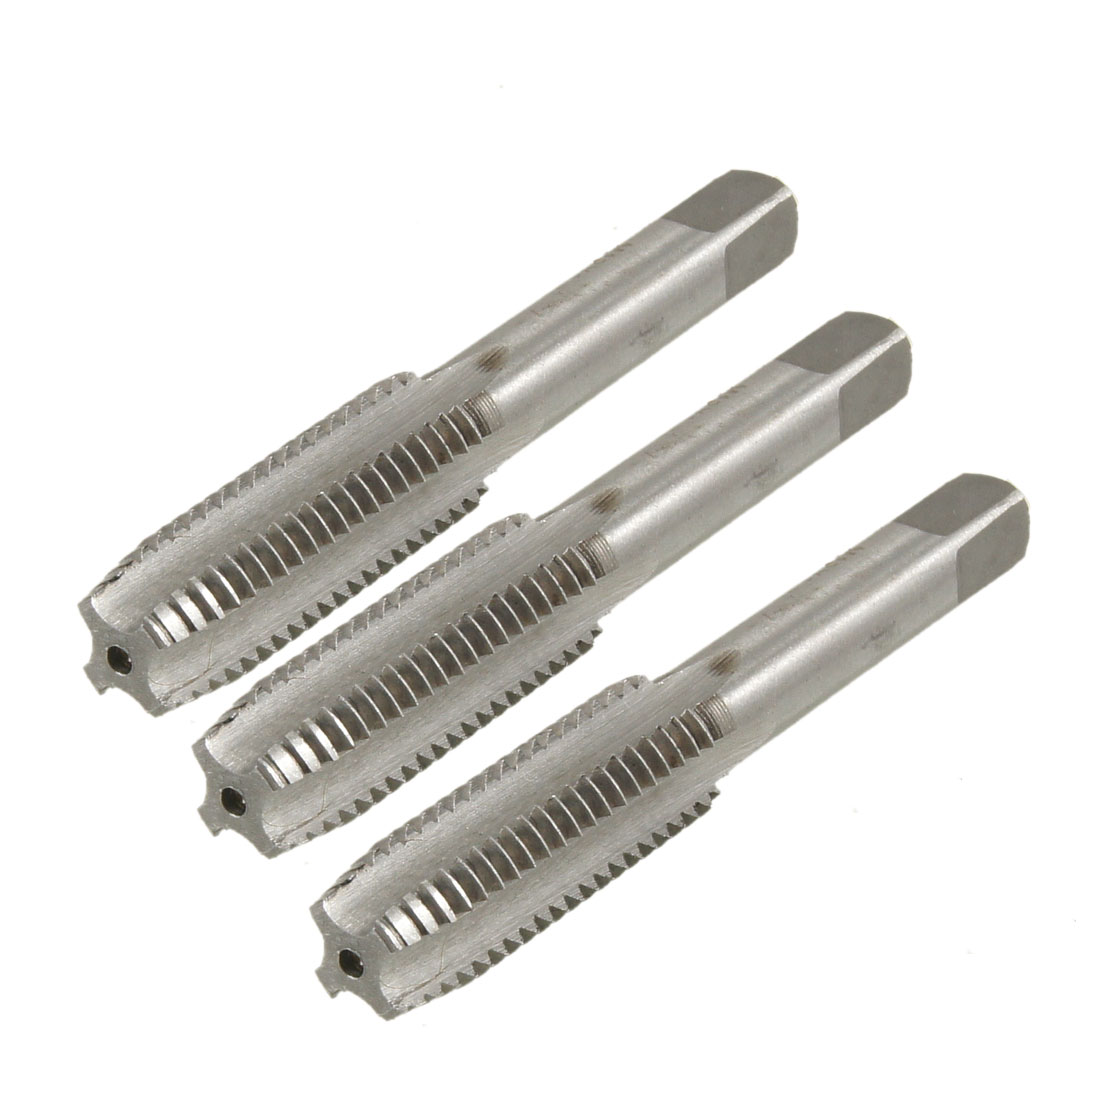 3 Pcs 12mm x 1.75mm Taper and Metric Tap M12 x 1.75mm Pitch